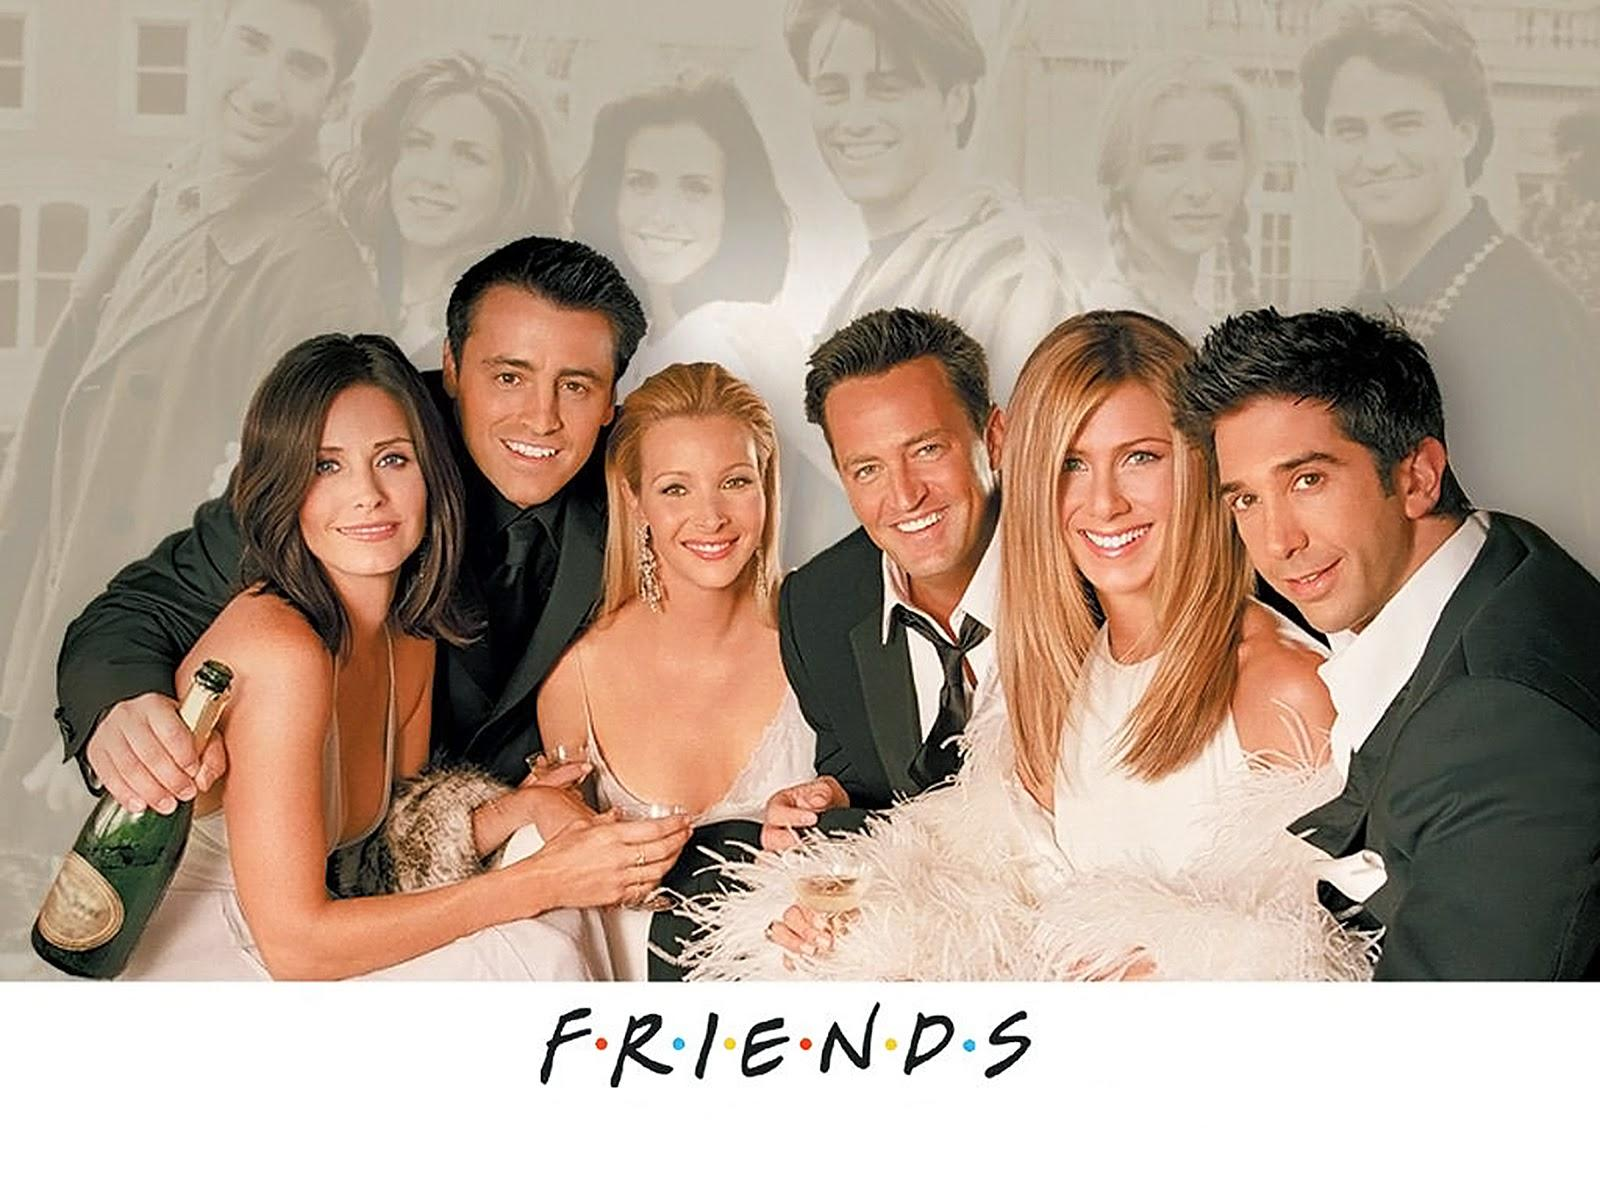 Friends Tv Show Wallpapers Hd Group